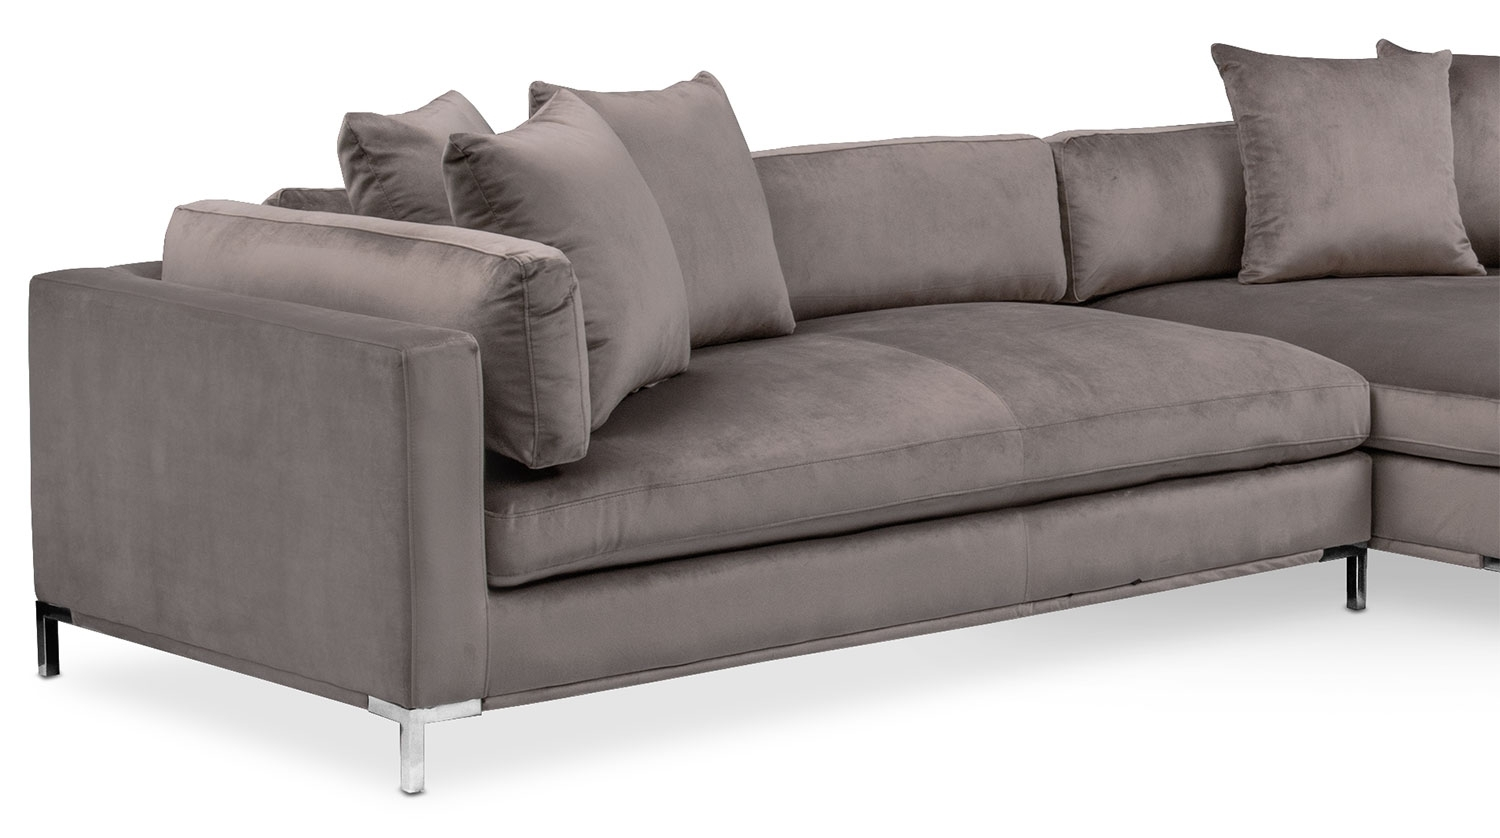 Moda 3 Piece Sectional With Left Facing Chaise – Oyster | American With Regard To Nico Grey Sectionals With Left Facing Storage Chaise (View 2 of 25)